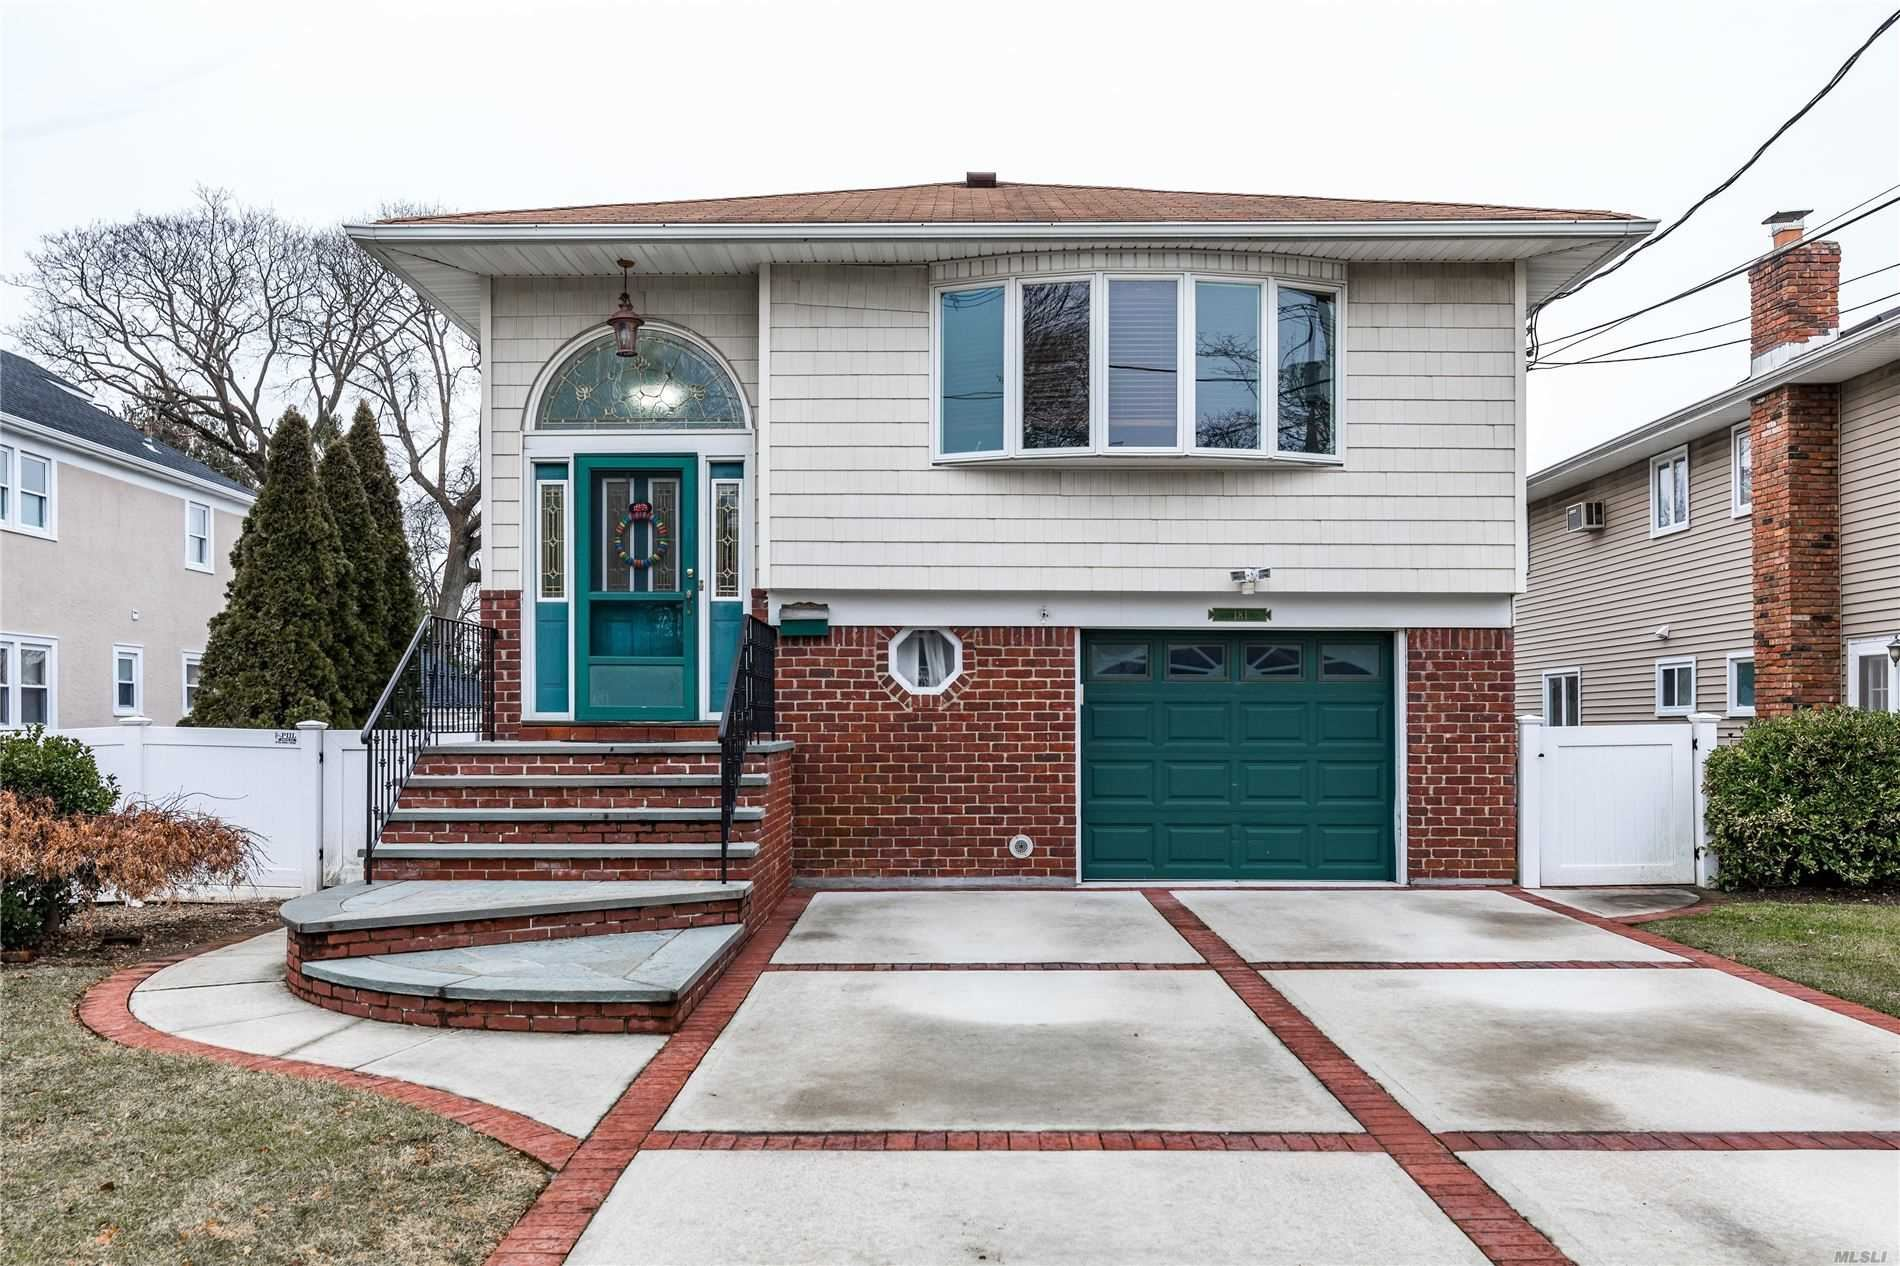 181 Brower Avenue, Rockville Centre, NY 11570 - MLS#: 3215708